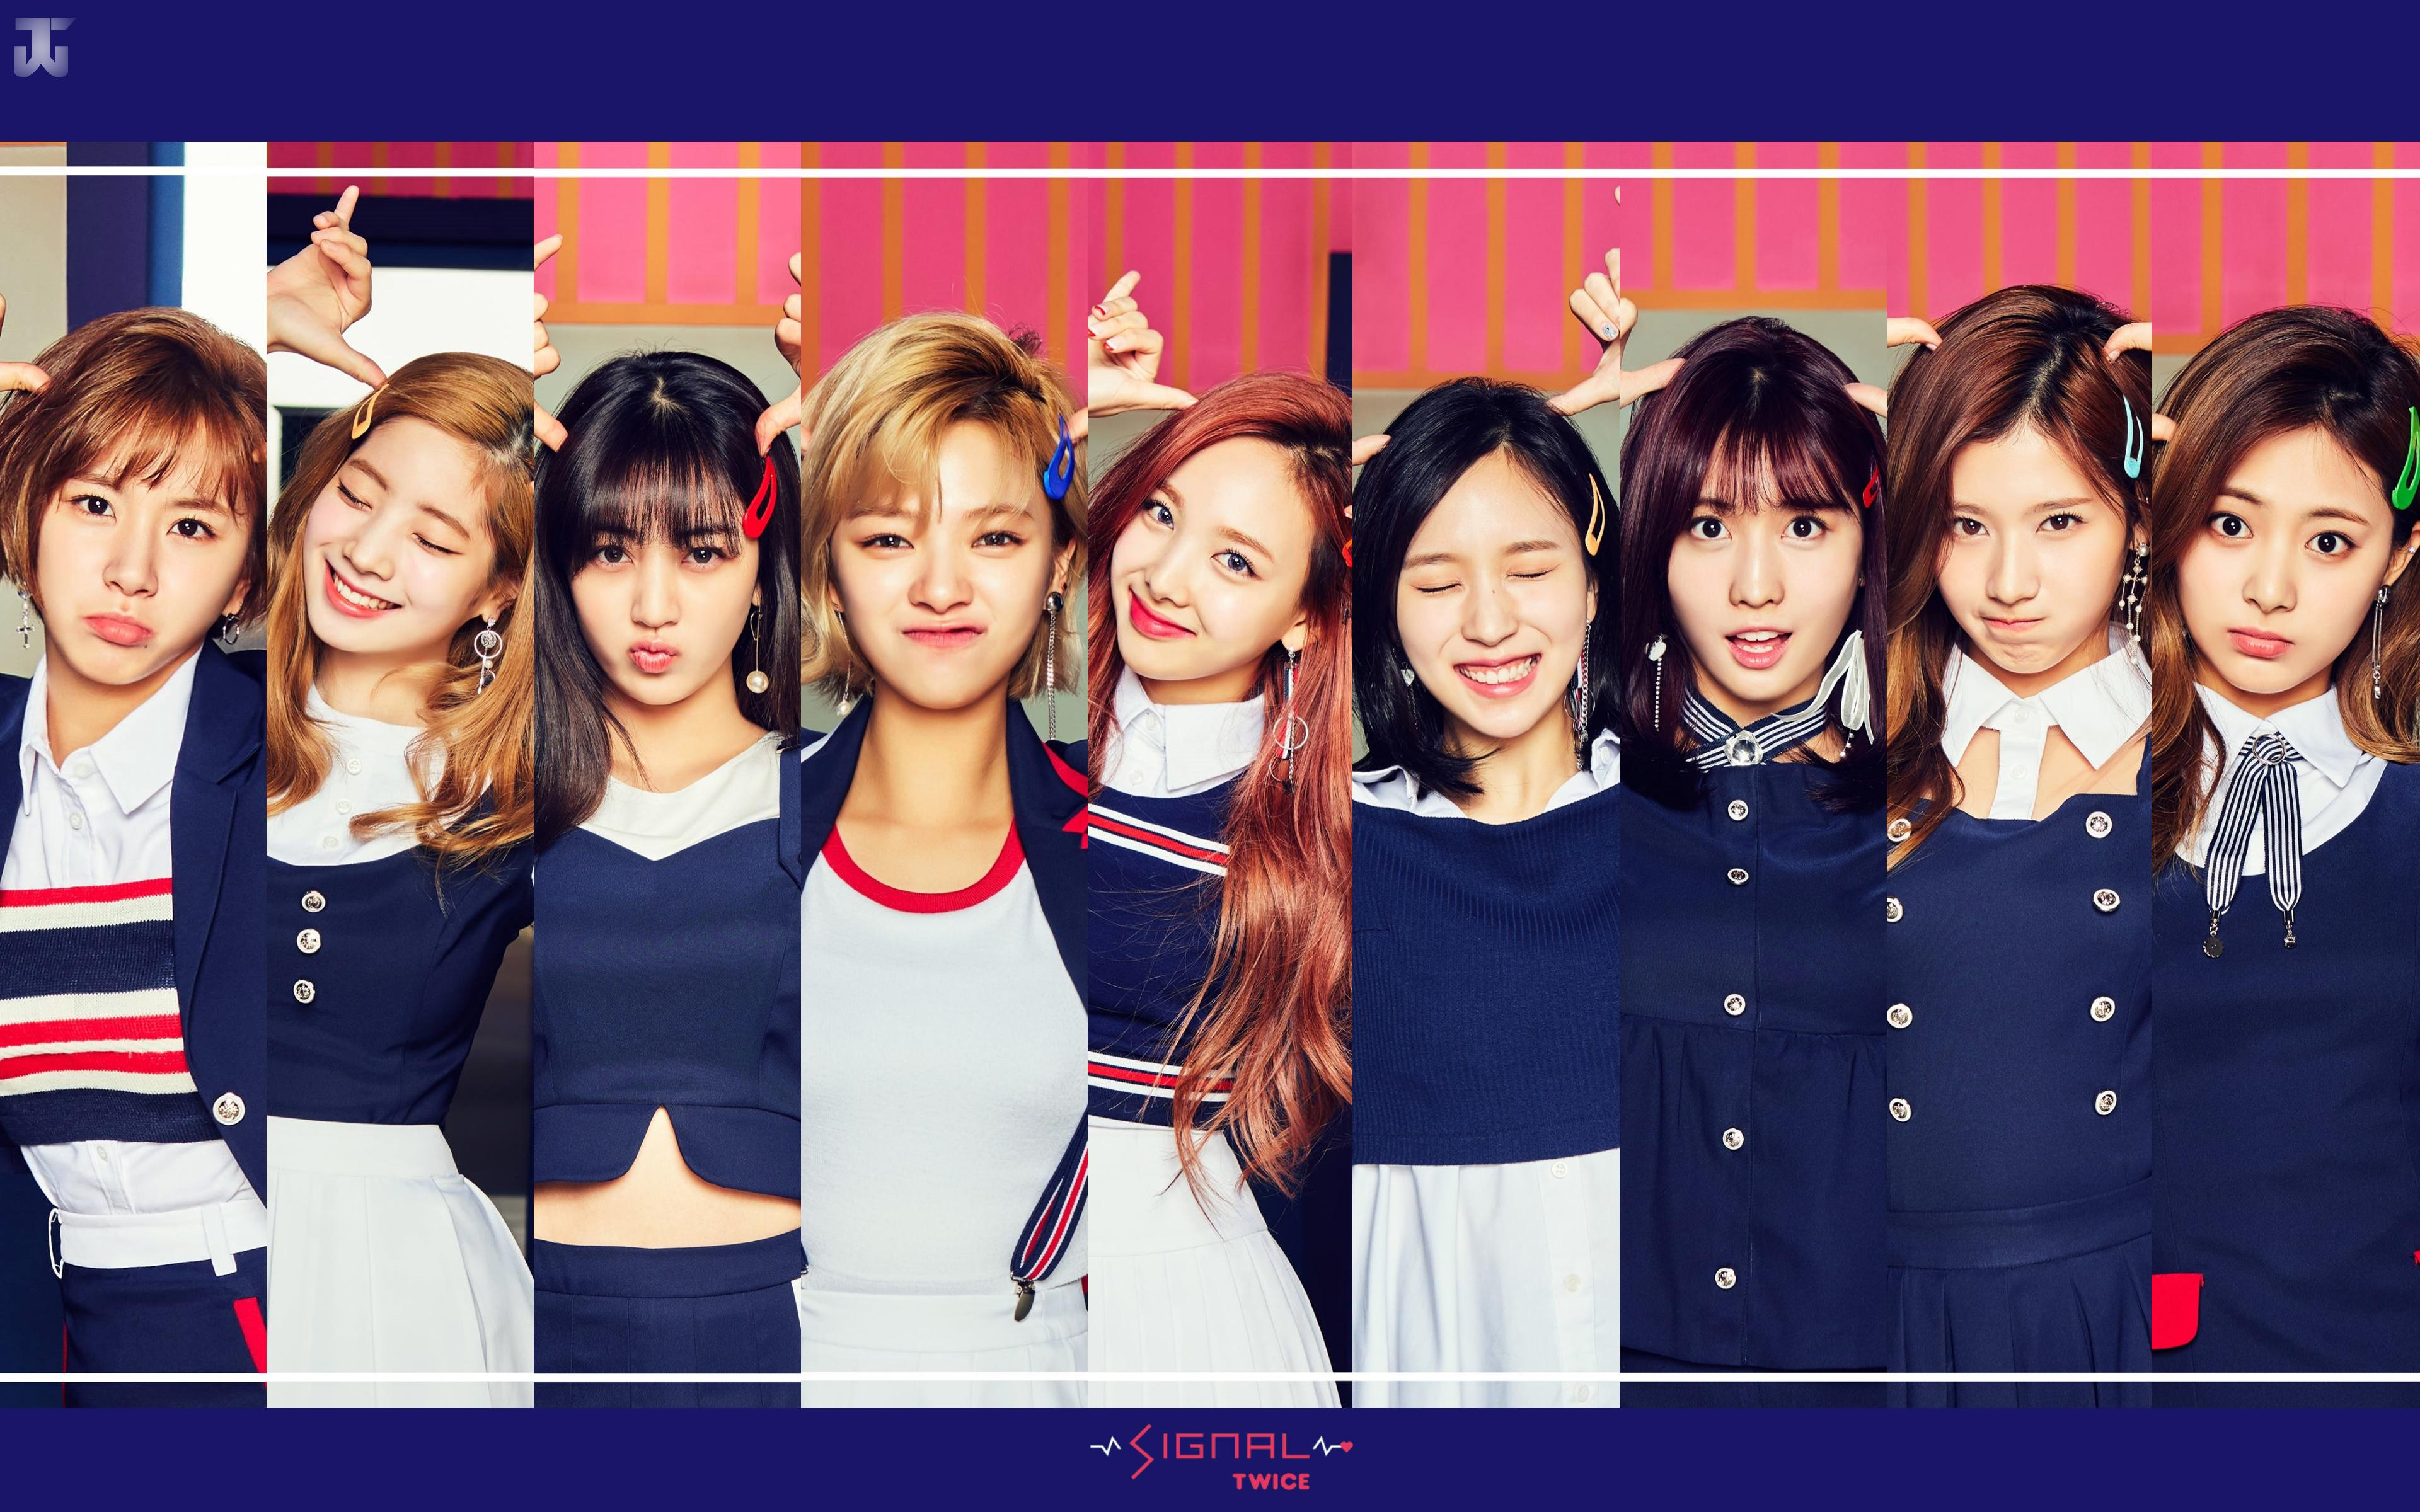 Signal Twice Wallpapers Wallpaper Cave